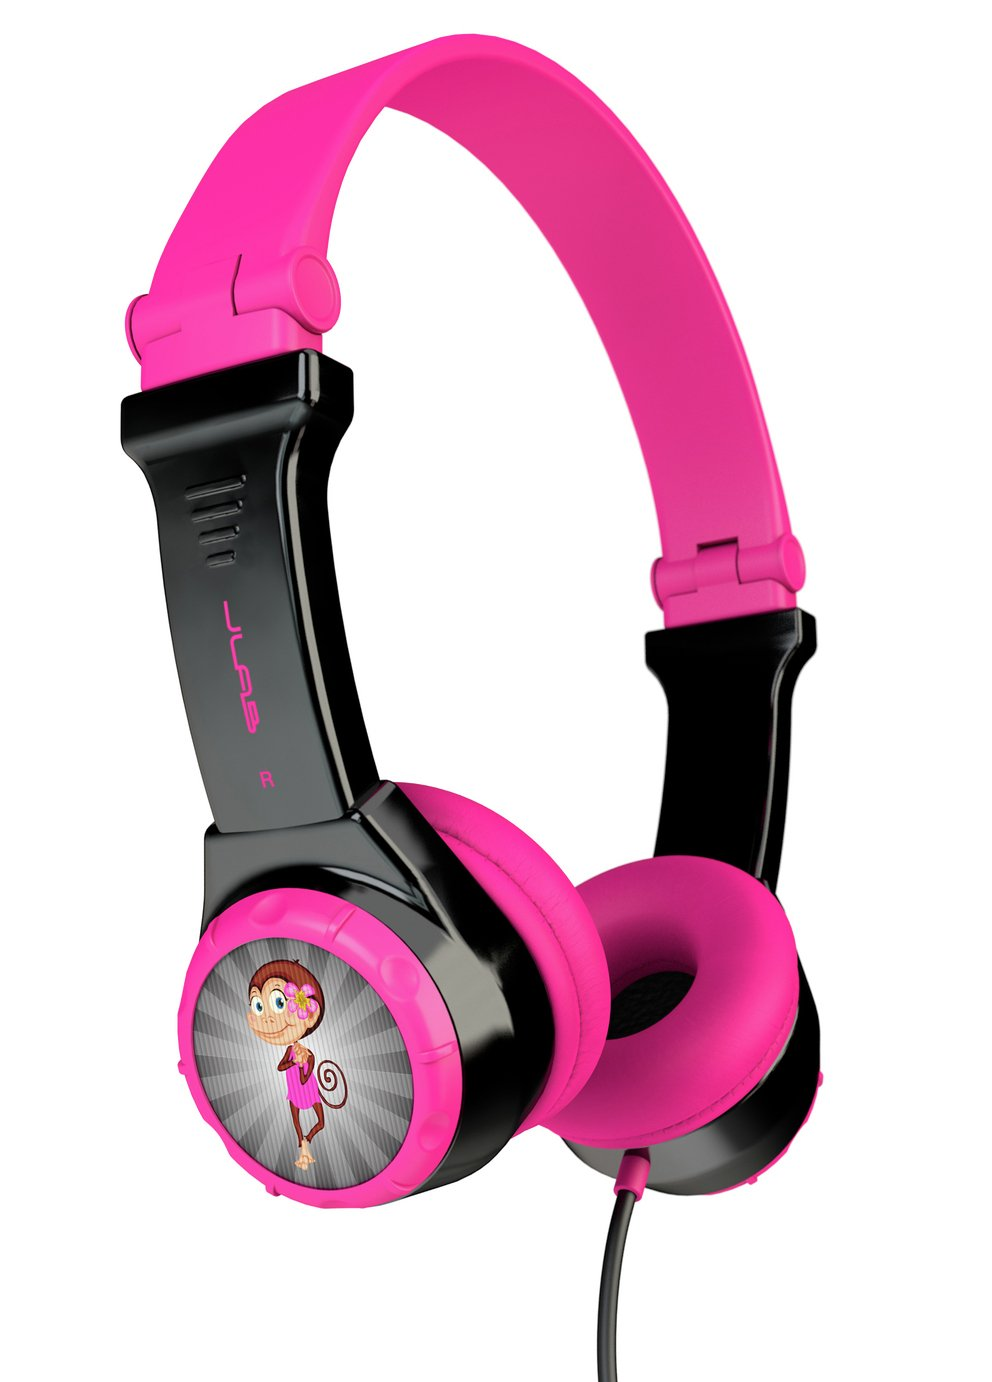 Jlab Audio Jbuddies Kids Headphones - Black / Pink